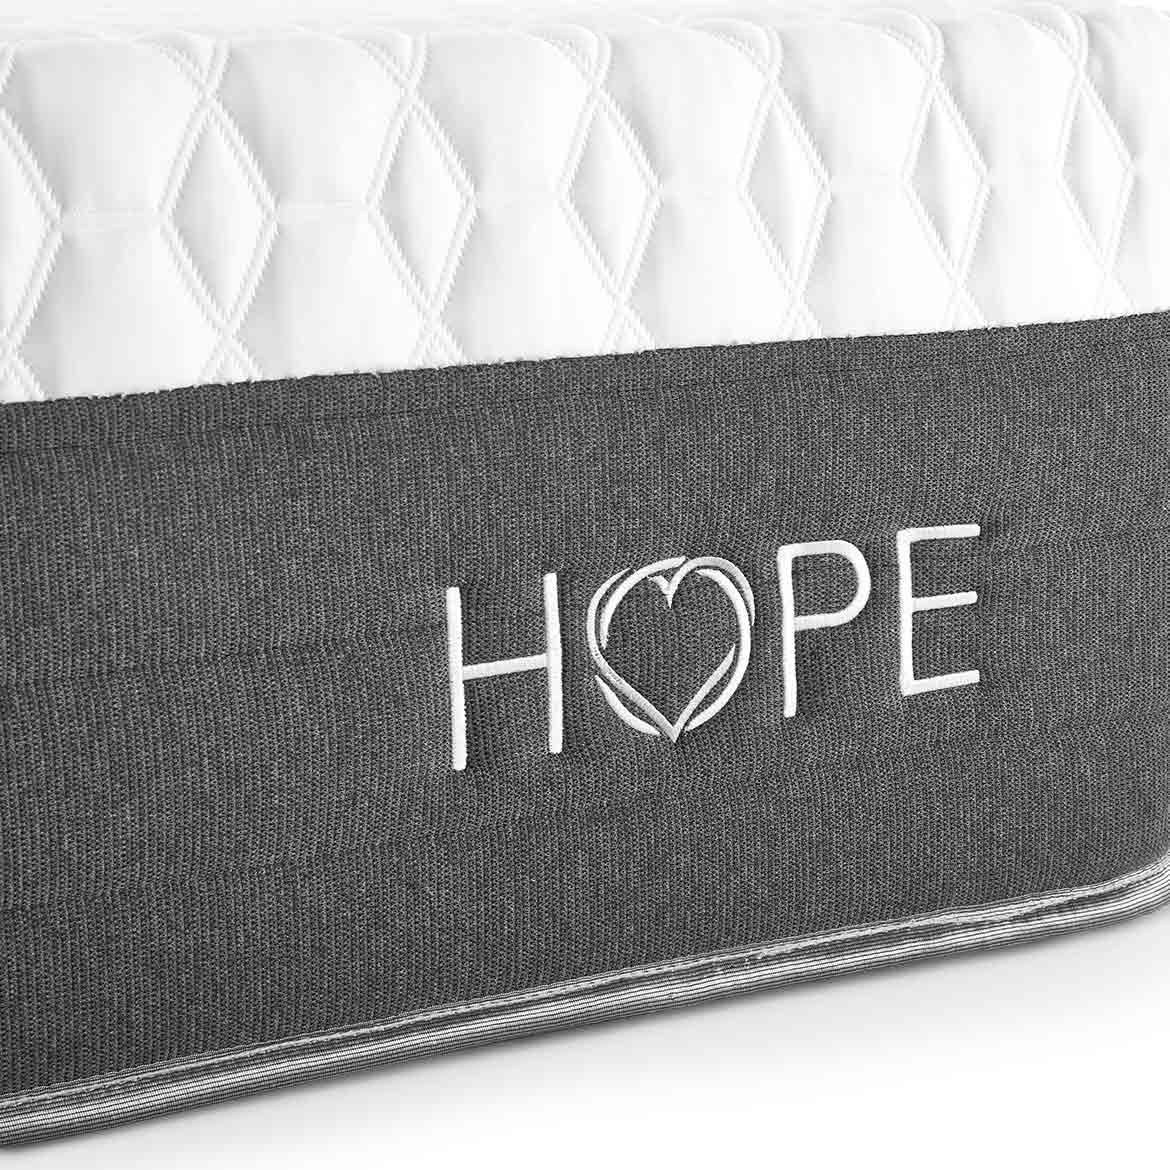 Hope Mattress, Bed In A Box, Most Comfortable Mattress, Mattress Sale, Memory Foam, Gel Infused Mattress, Inner Spring Mattress, Cooling Mattress, Best Mattress, Best Reviewed Mattress, Hope, Dream, Aspire, Rever, Midnight, Hybernate